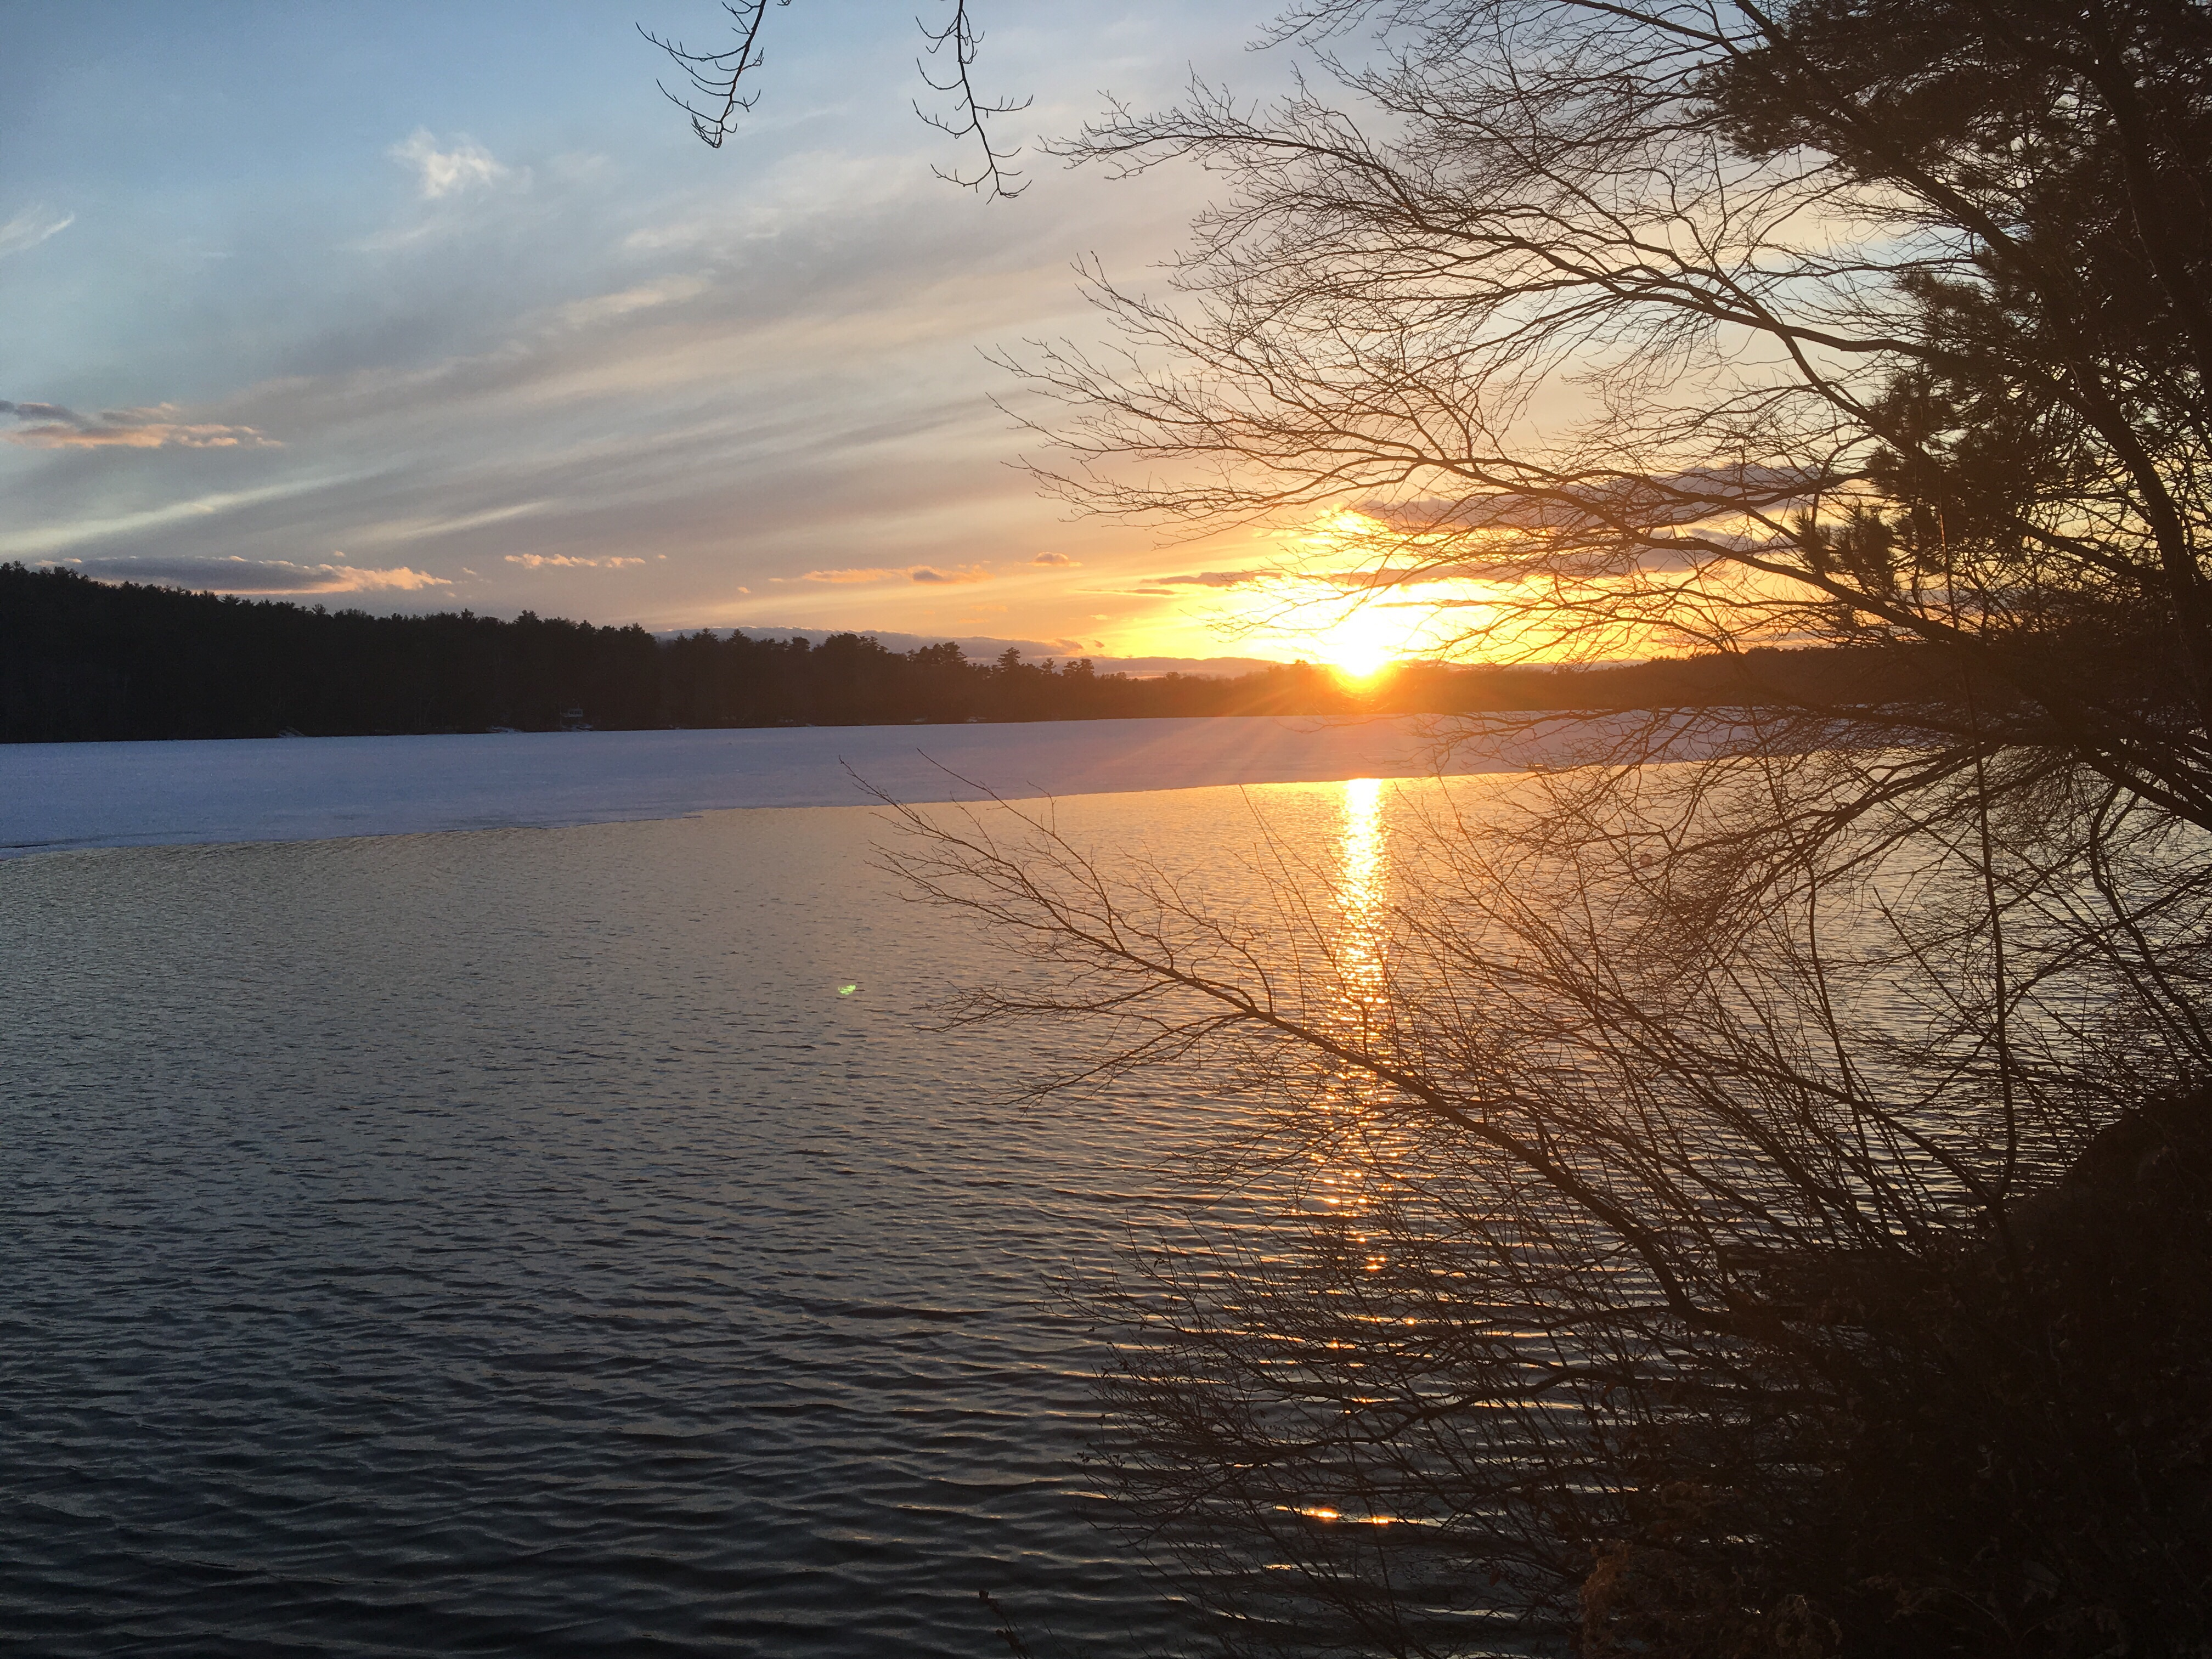 Sunset Over Open Water